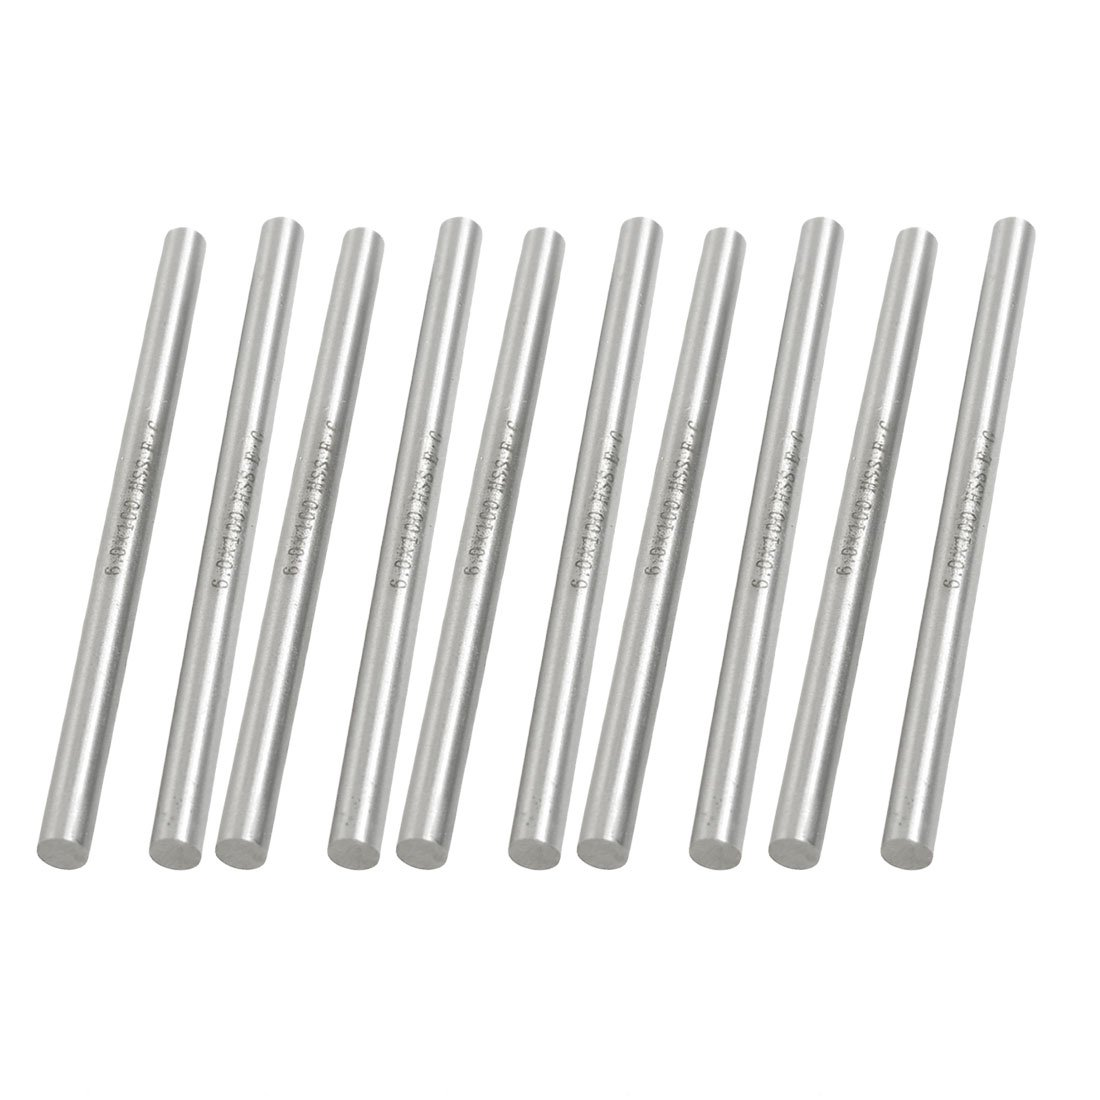 Uxcell a12102200ux0603 High Speed Steel Lathe Round Bar Milling Cutter 6mm x 100mm (Pack of 10)